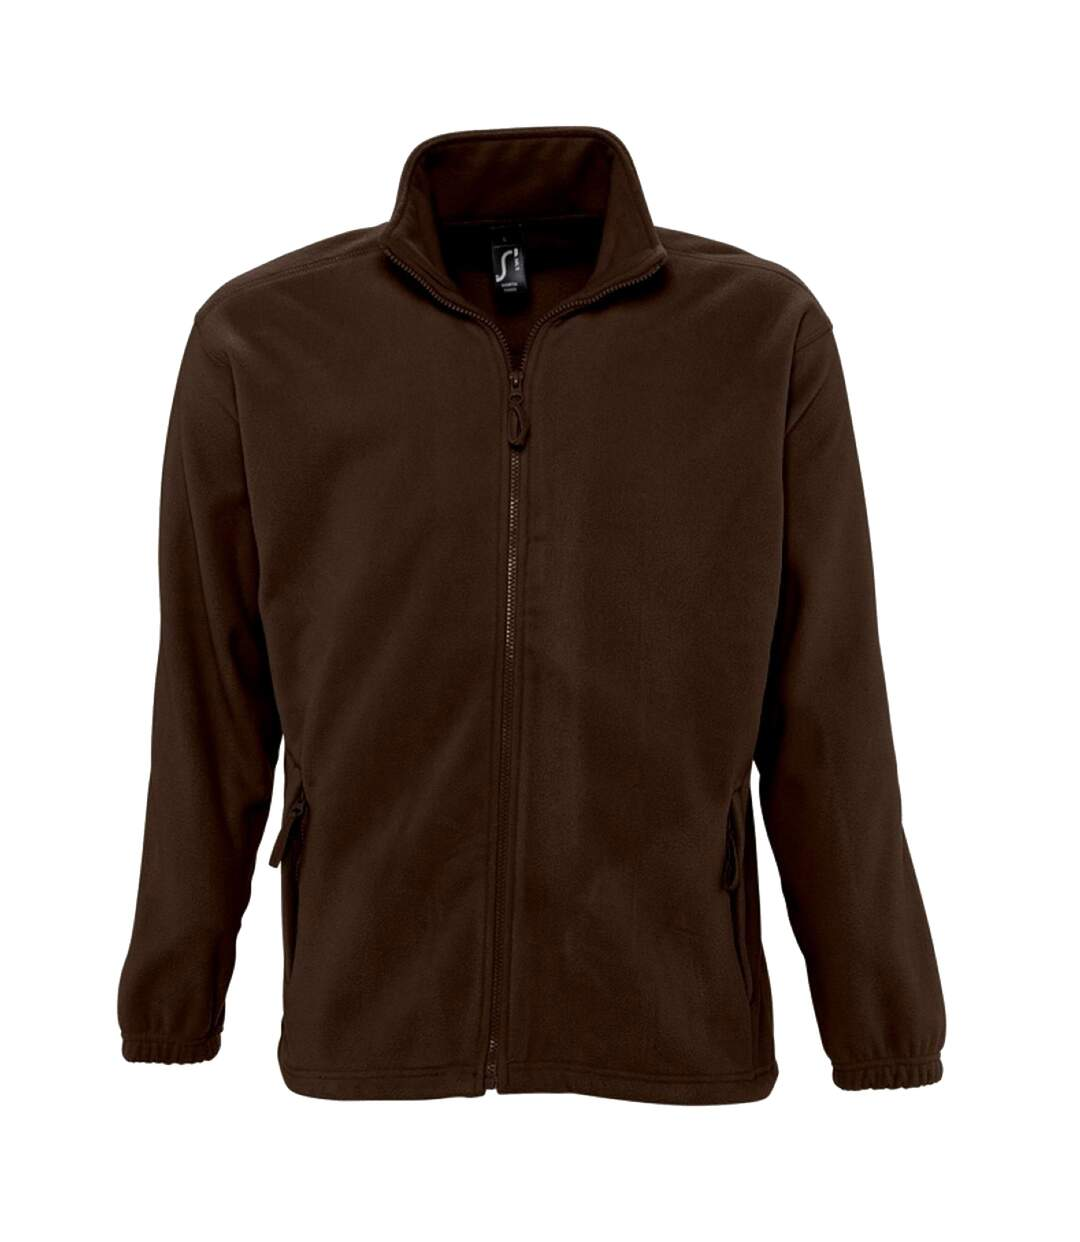 SOLS Mens North Full Zip Outdoor Fleece Jacket (Dark Chocolate) - UTPC343